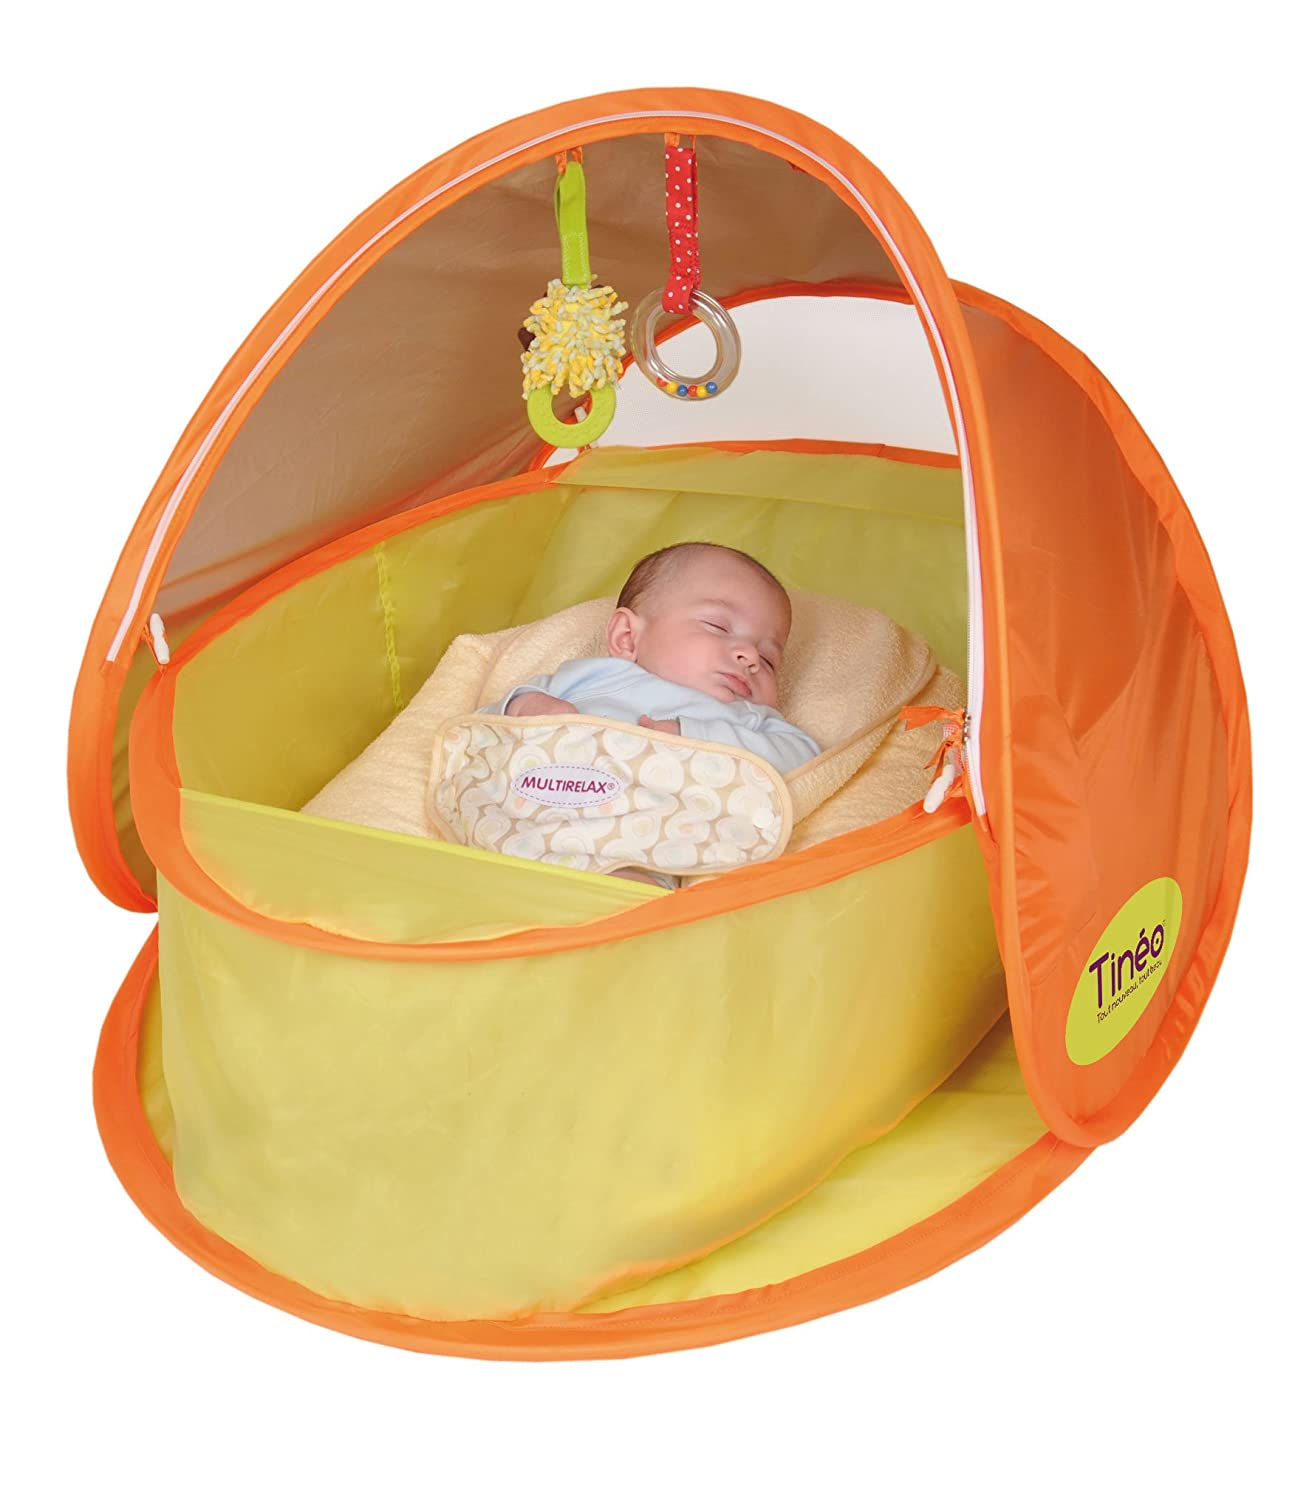 Amazon.com  Candide Baby Group UV 55 Pop-Up Tent  Infant And Toddler Travel Beds  Baby  sc 1 st  Amazon.com & Amazon.com : Candide Baby Group UV 55 Pop-Up Tent : Infant And ...